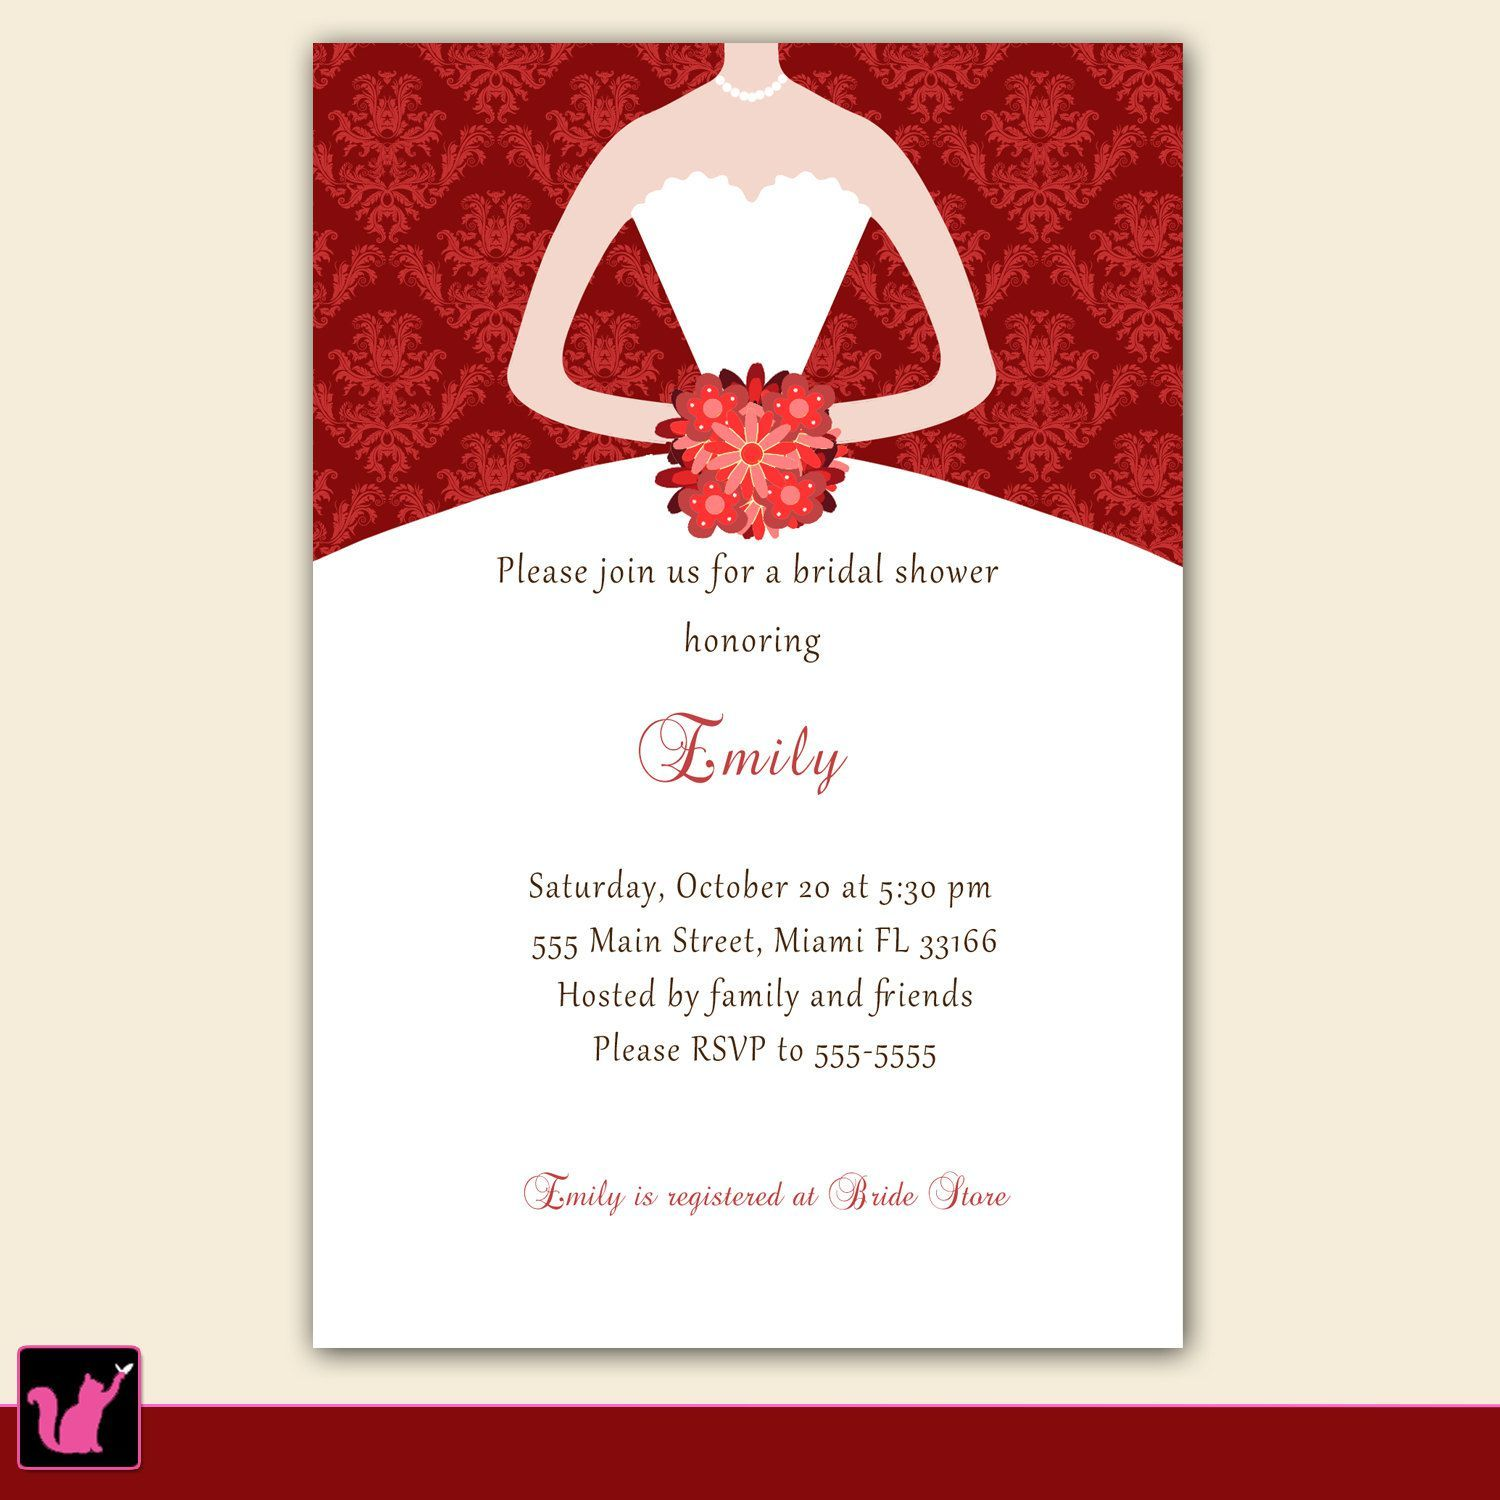 bridal shower invitations examples | bridal shower invitations ...